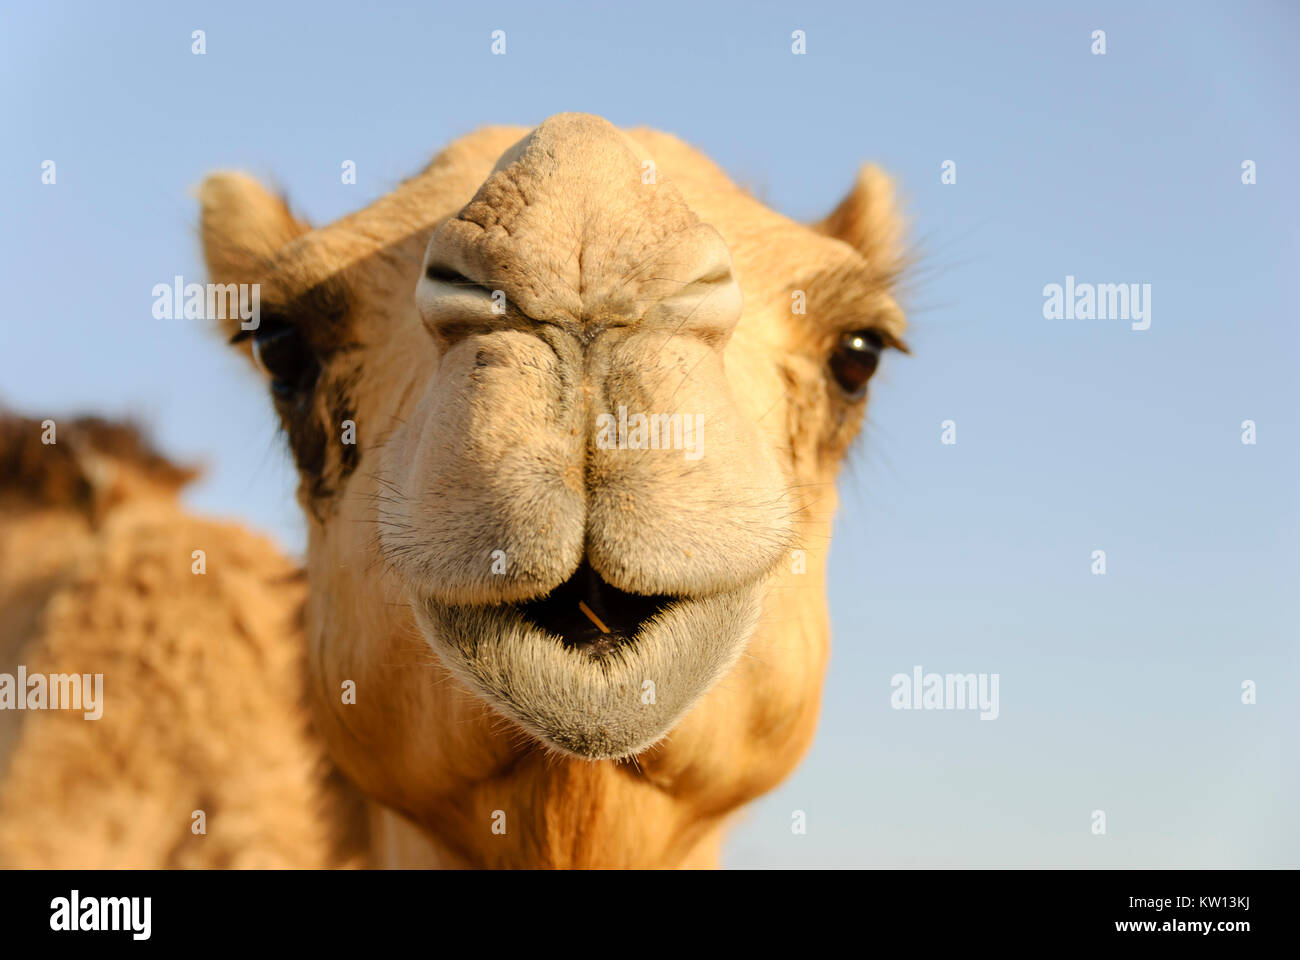 Closeup of a camel's nose and mouth, nostrils closed to keep out sand - Stock Image